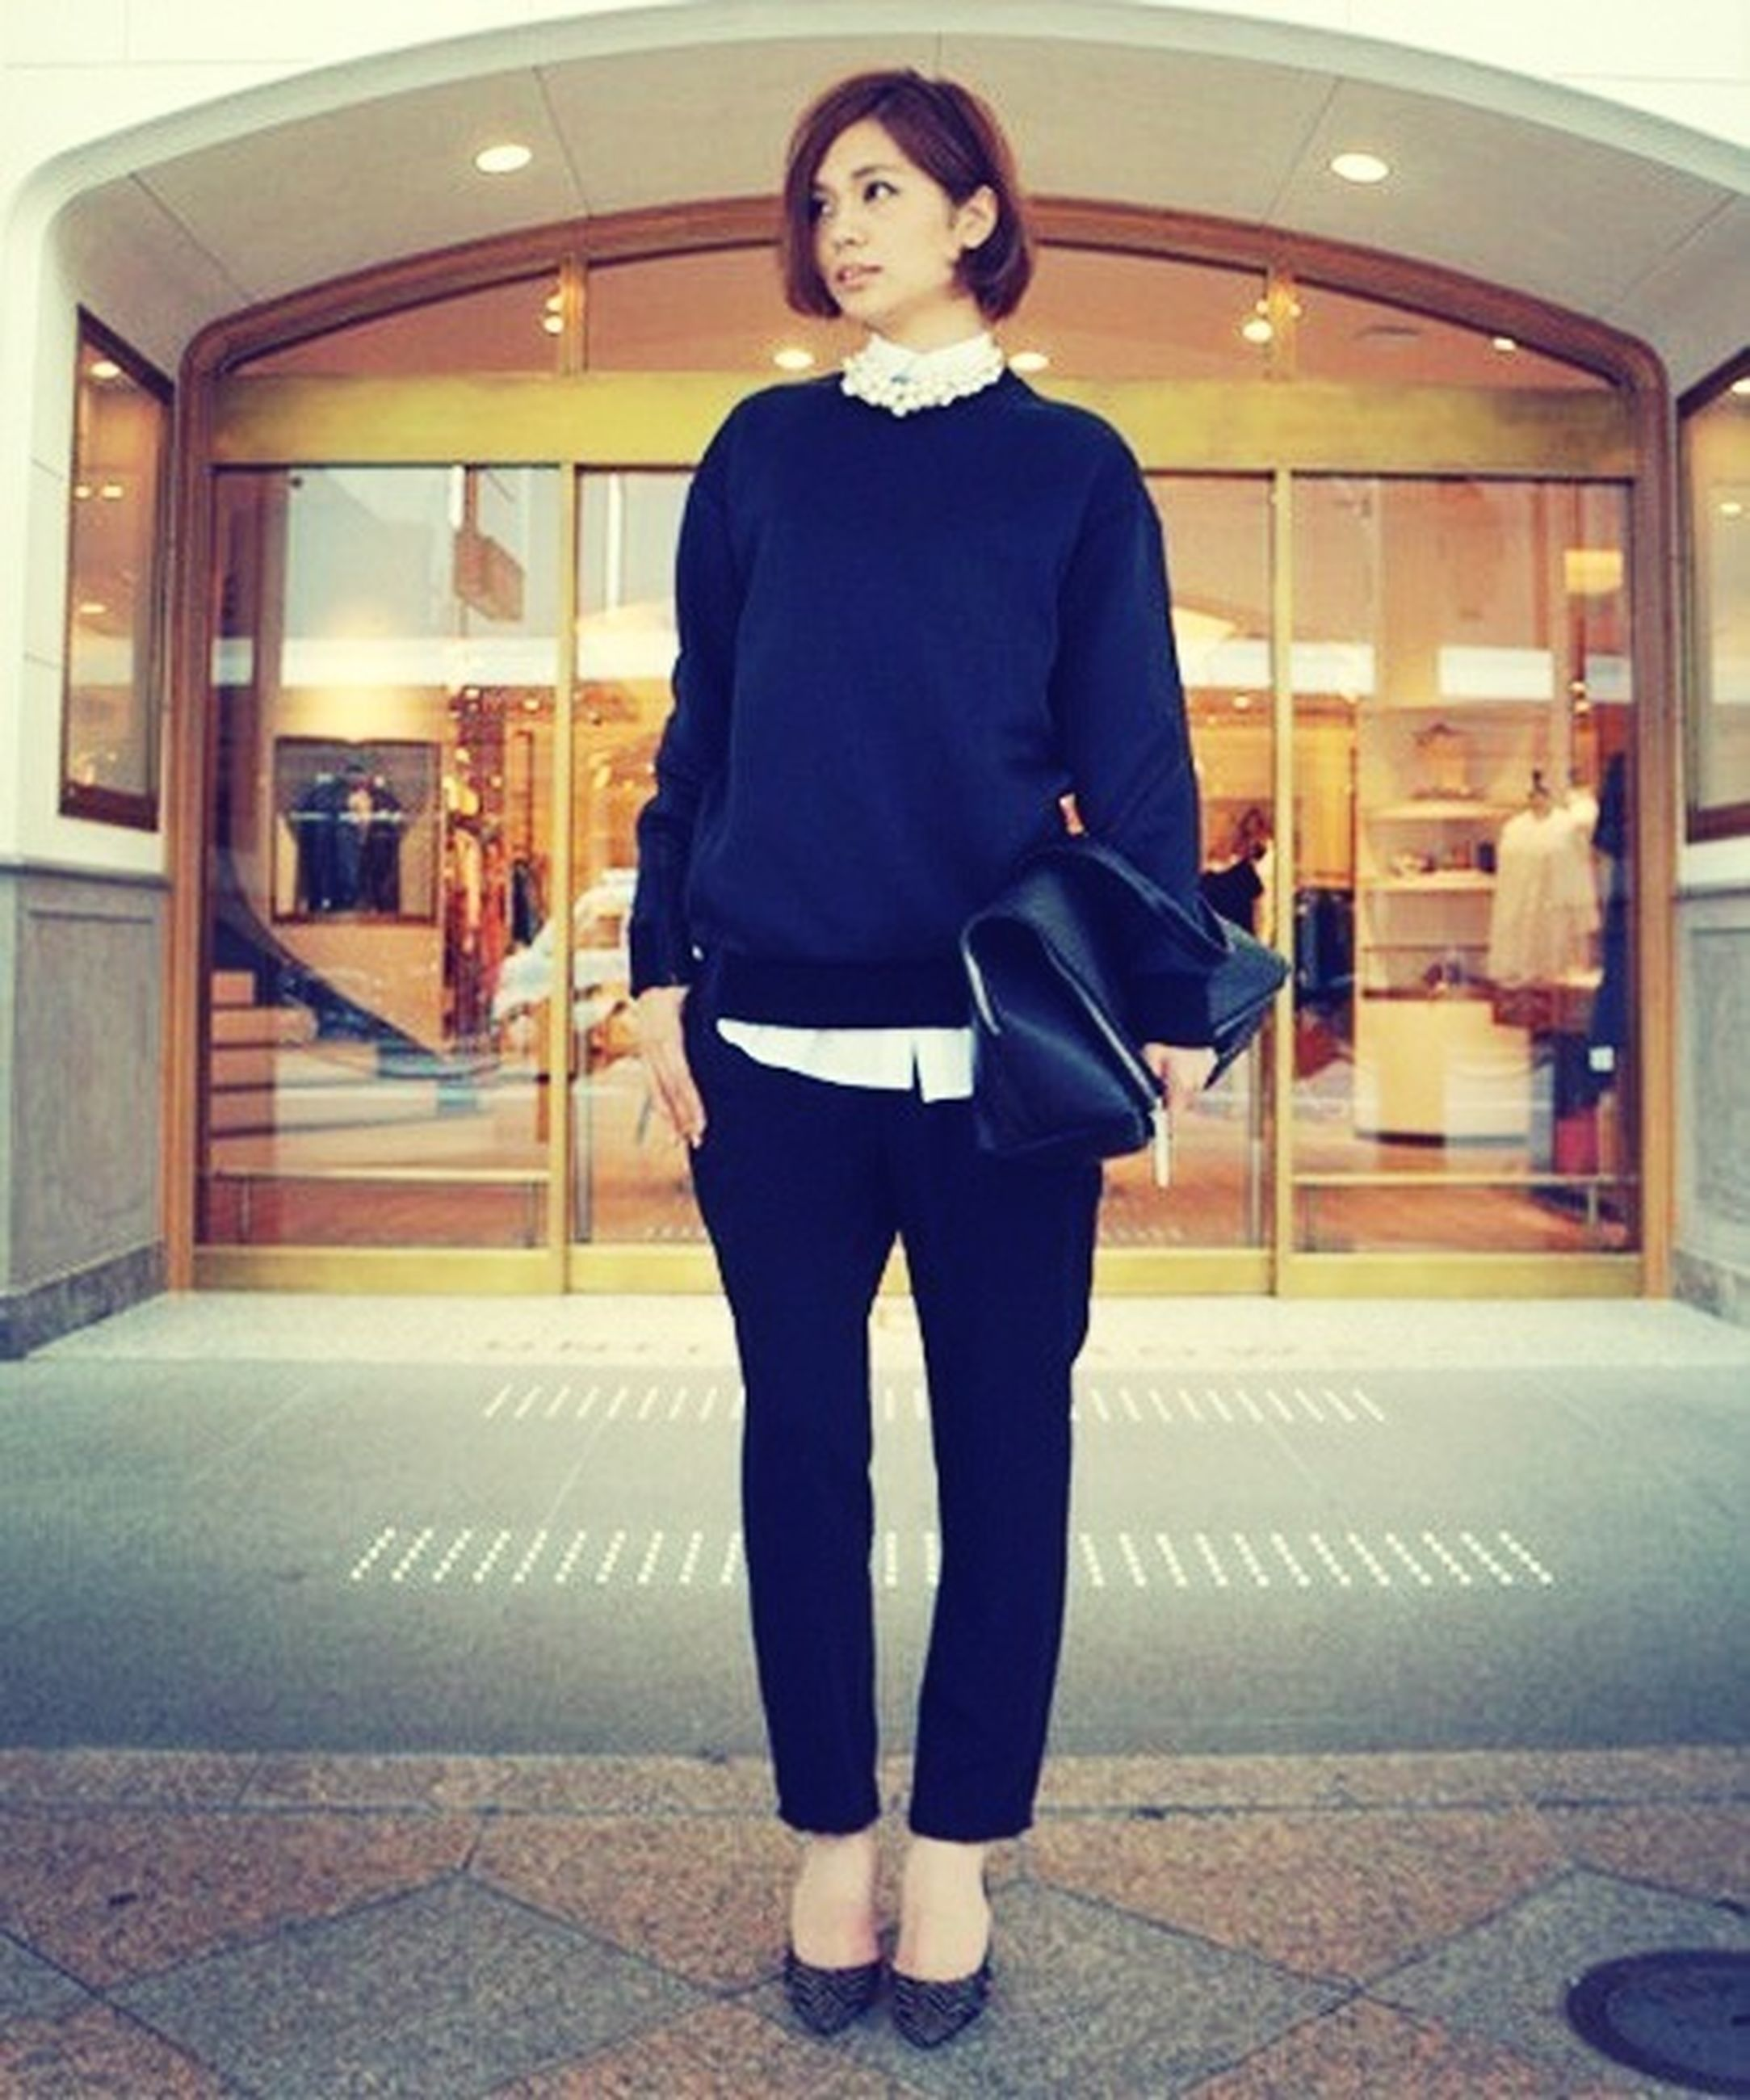 lifestyles, casual clothing, standing, indoors, front view, full length, young adult, person, leisure activity, young women, looking at camera, architecture, illuminated, portrait, three quarter length, built structure, fashion